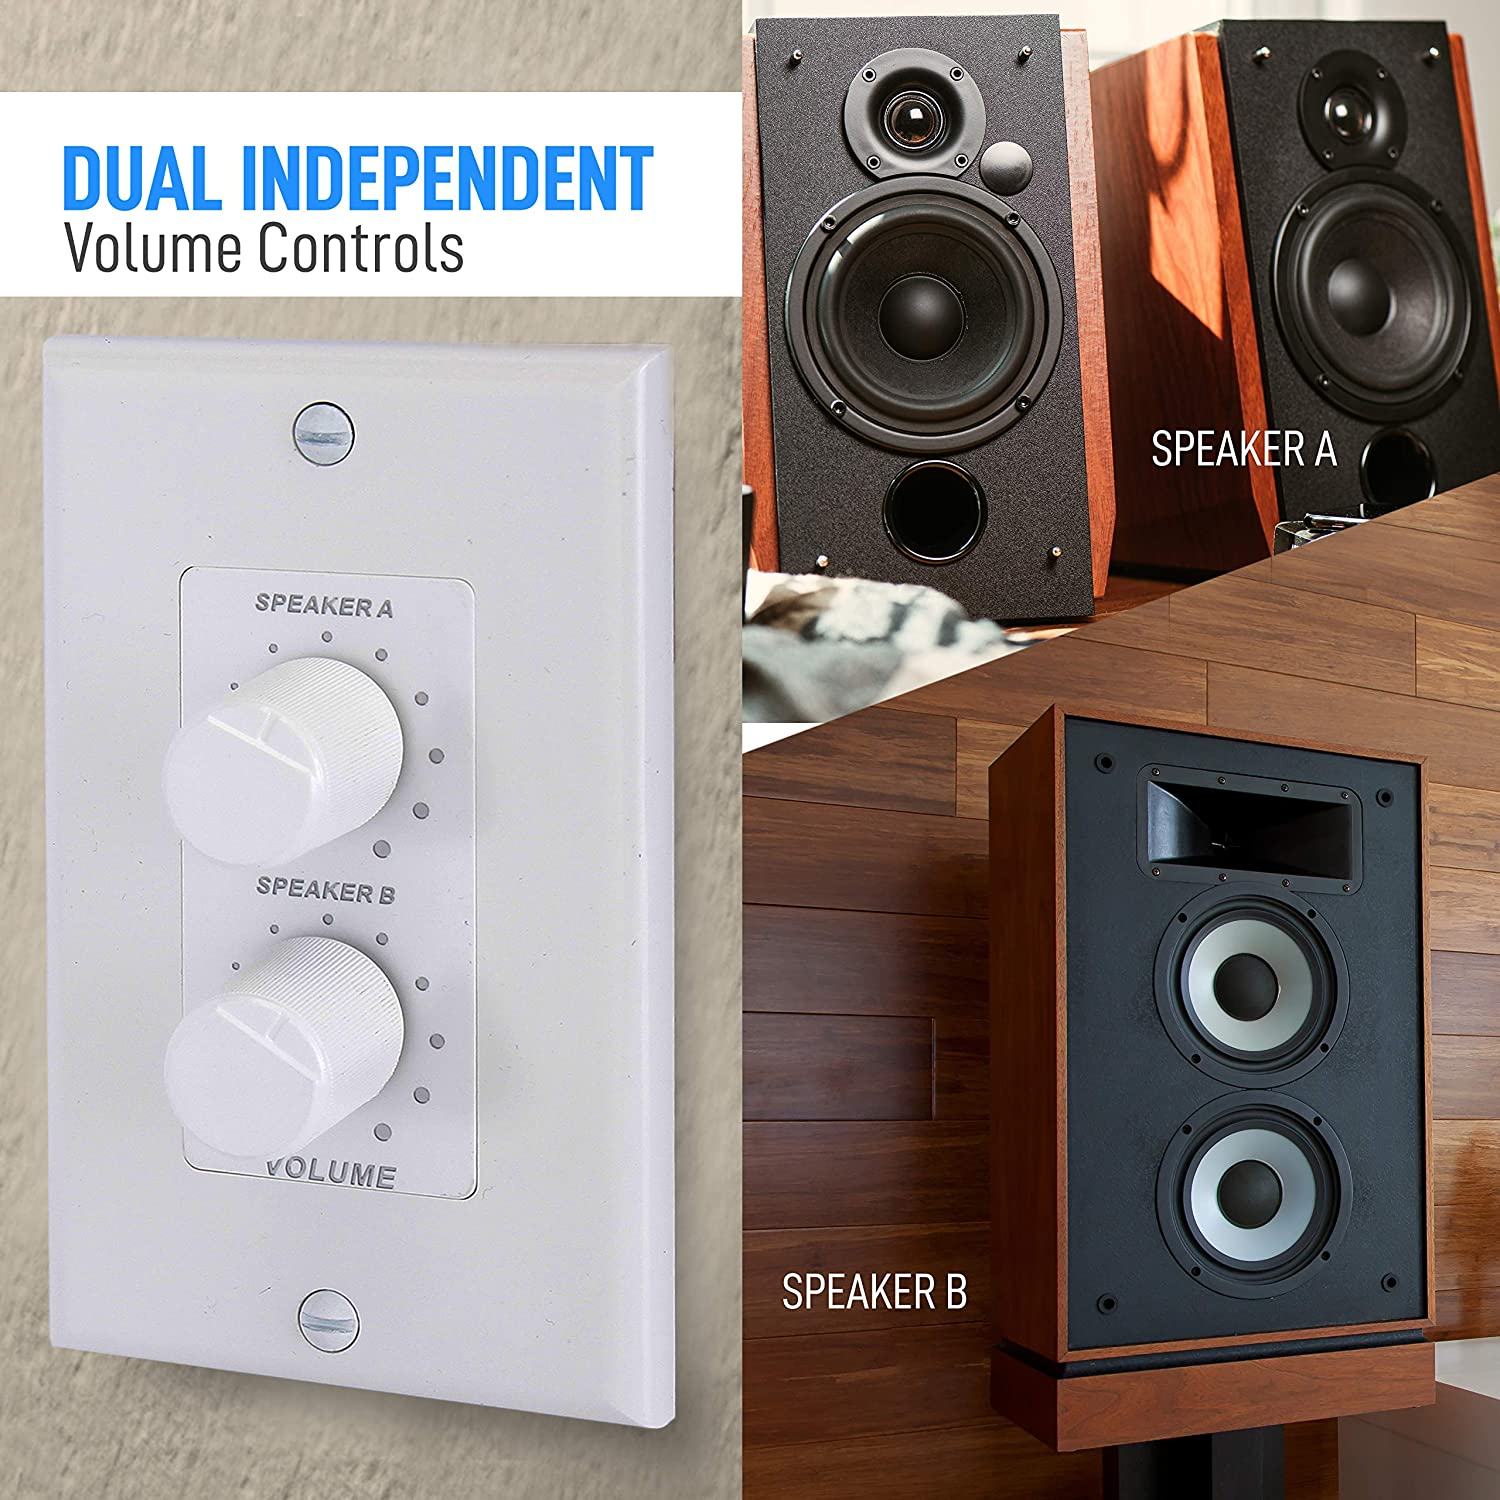 2 Home Audio Smart 2-Channel A//B Dual Channel Speakers Controller Selector Pod Box In Wall Speaker Volume Control Pair of Indoor or Outdoor Speakers Rotary Knob Fader Control Up to Pyle PVCD15